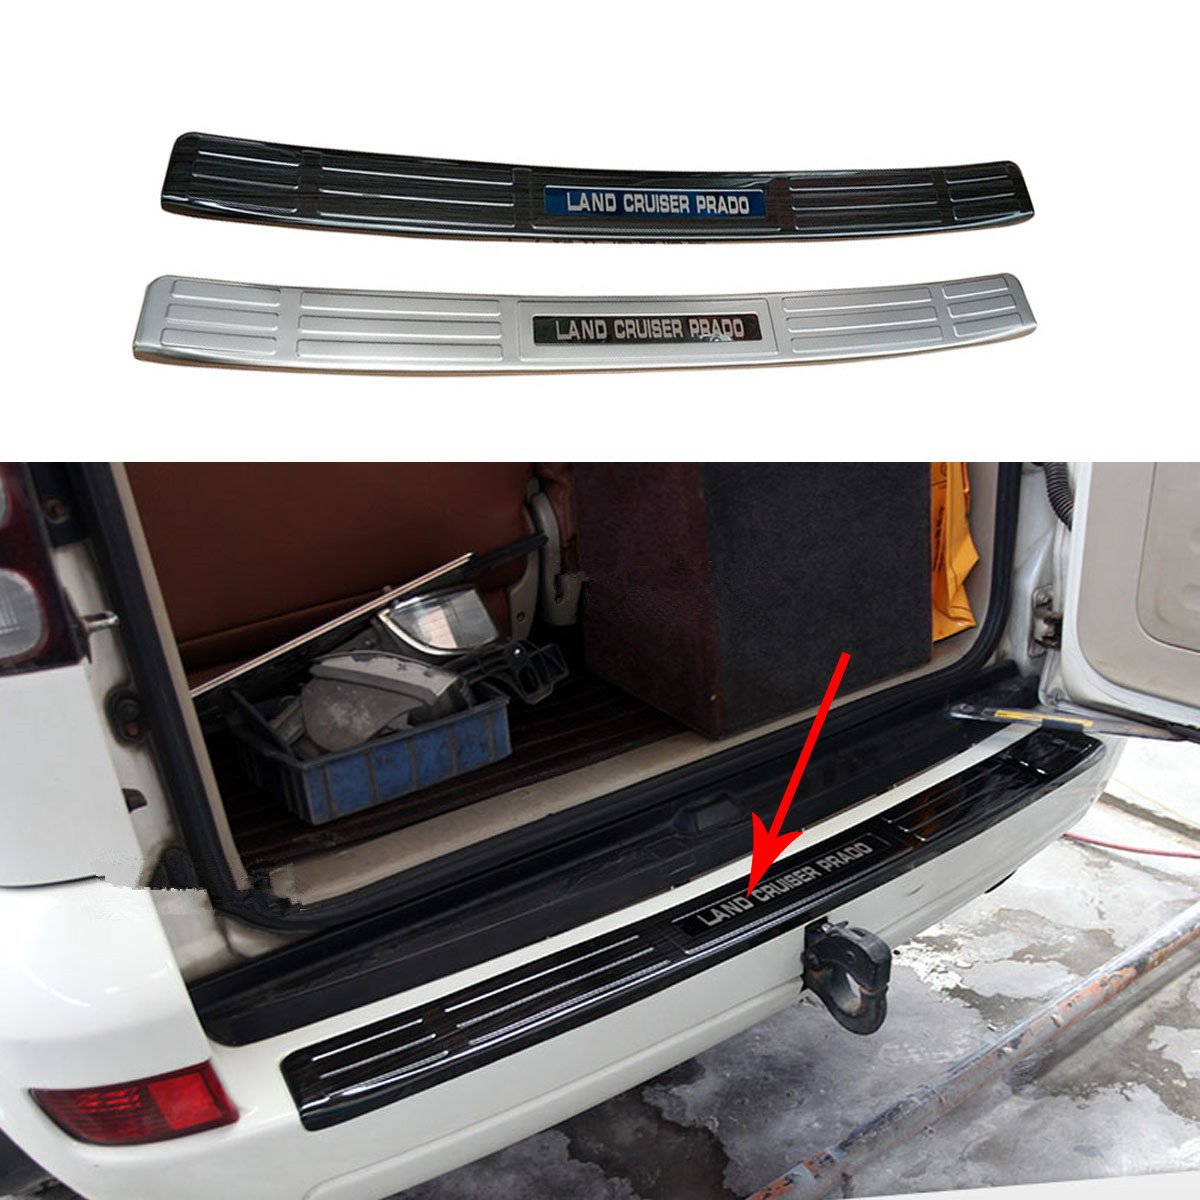 Stainless Steel Internal and External Rear Guard for <font><b>Toyota</b></font> <font><b>Land</b></font> <font><b>Cruiser</b></font> <font><b>Prado</b></font> <font><b>120</b></font> <font><b>2003</b></font> 2004 2005 2006 2007 2008 <font><b>2009</b></font> image